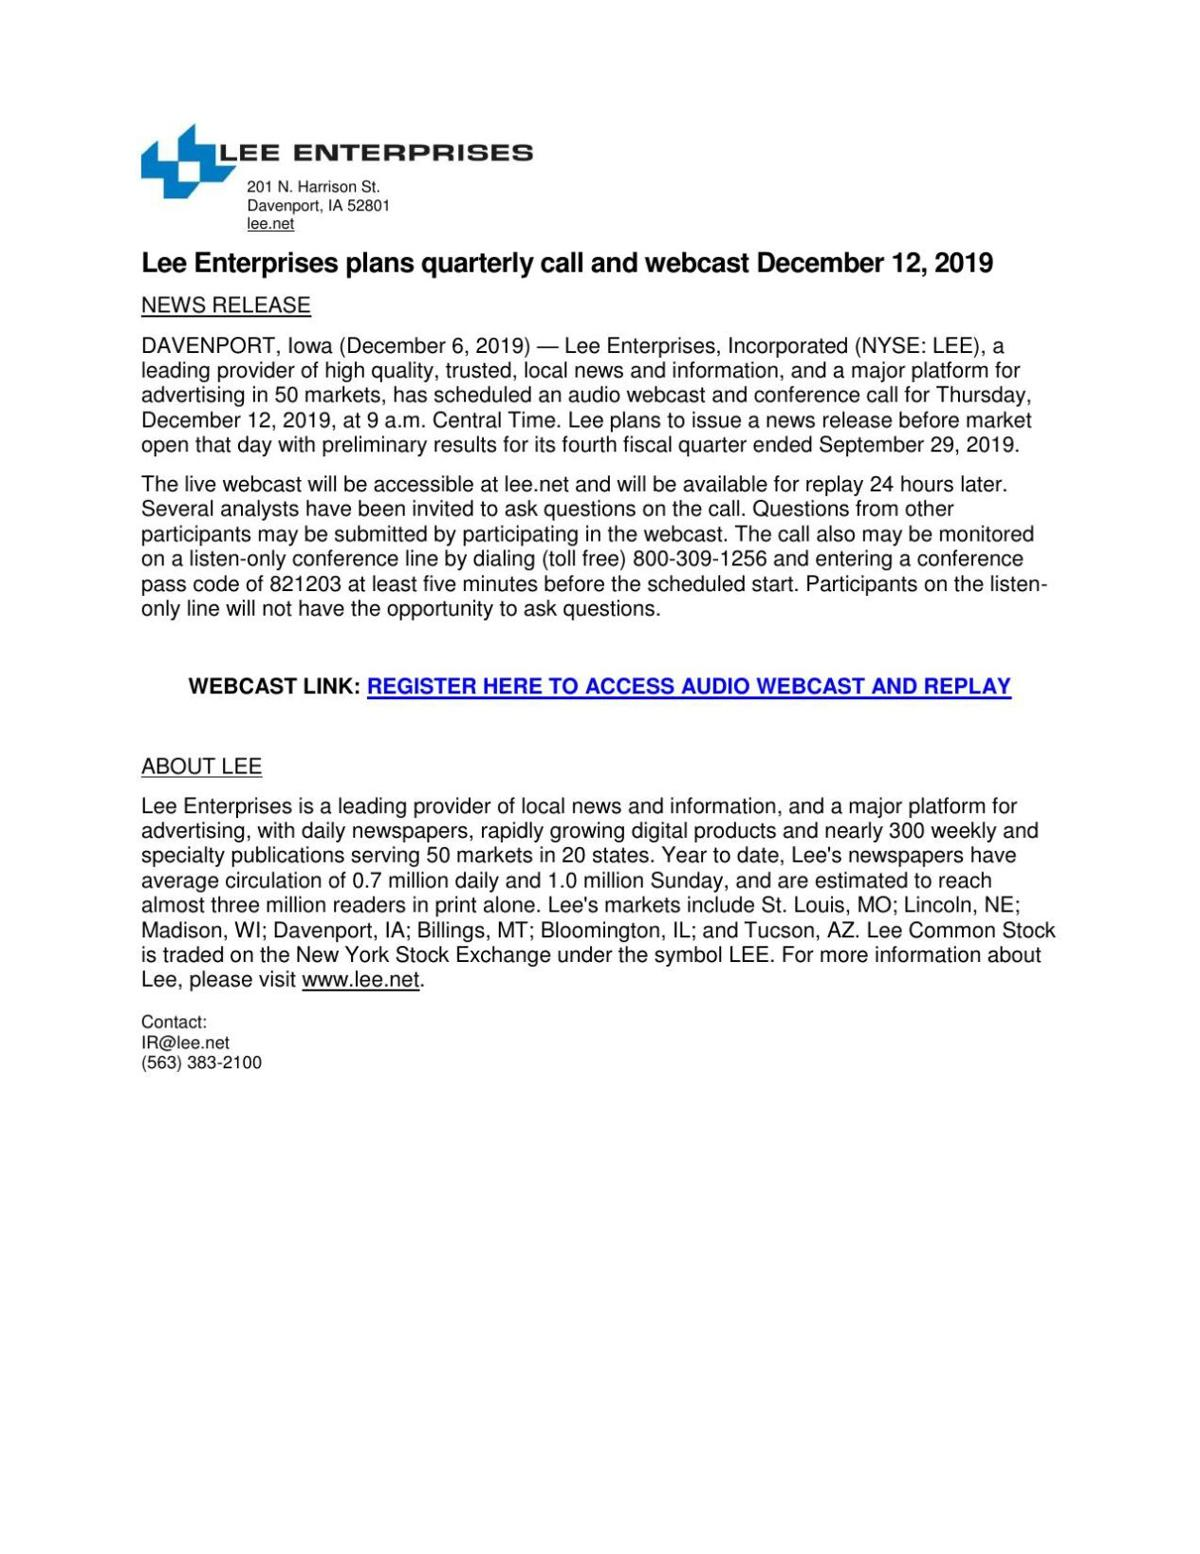 Lee Enterprises plans quarterly call and webcast December 12, 2019